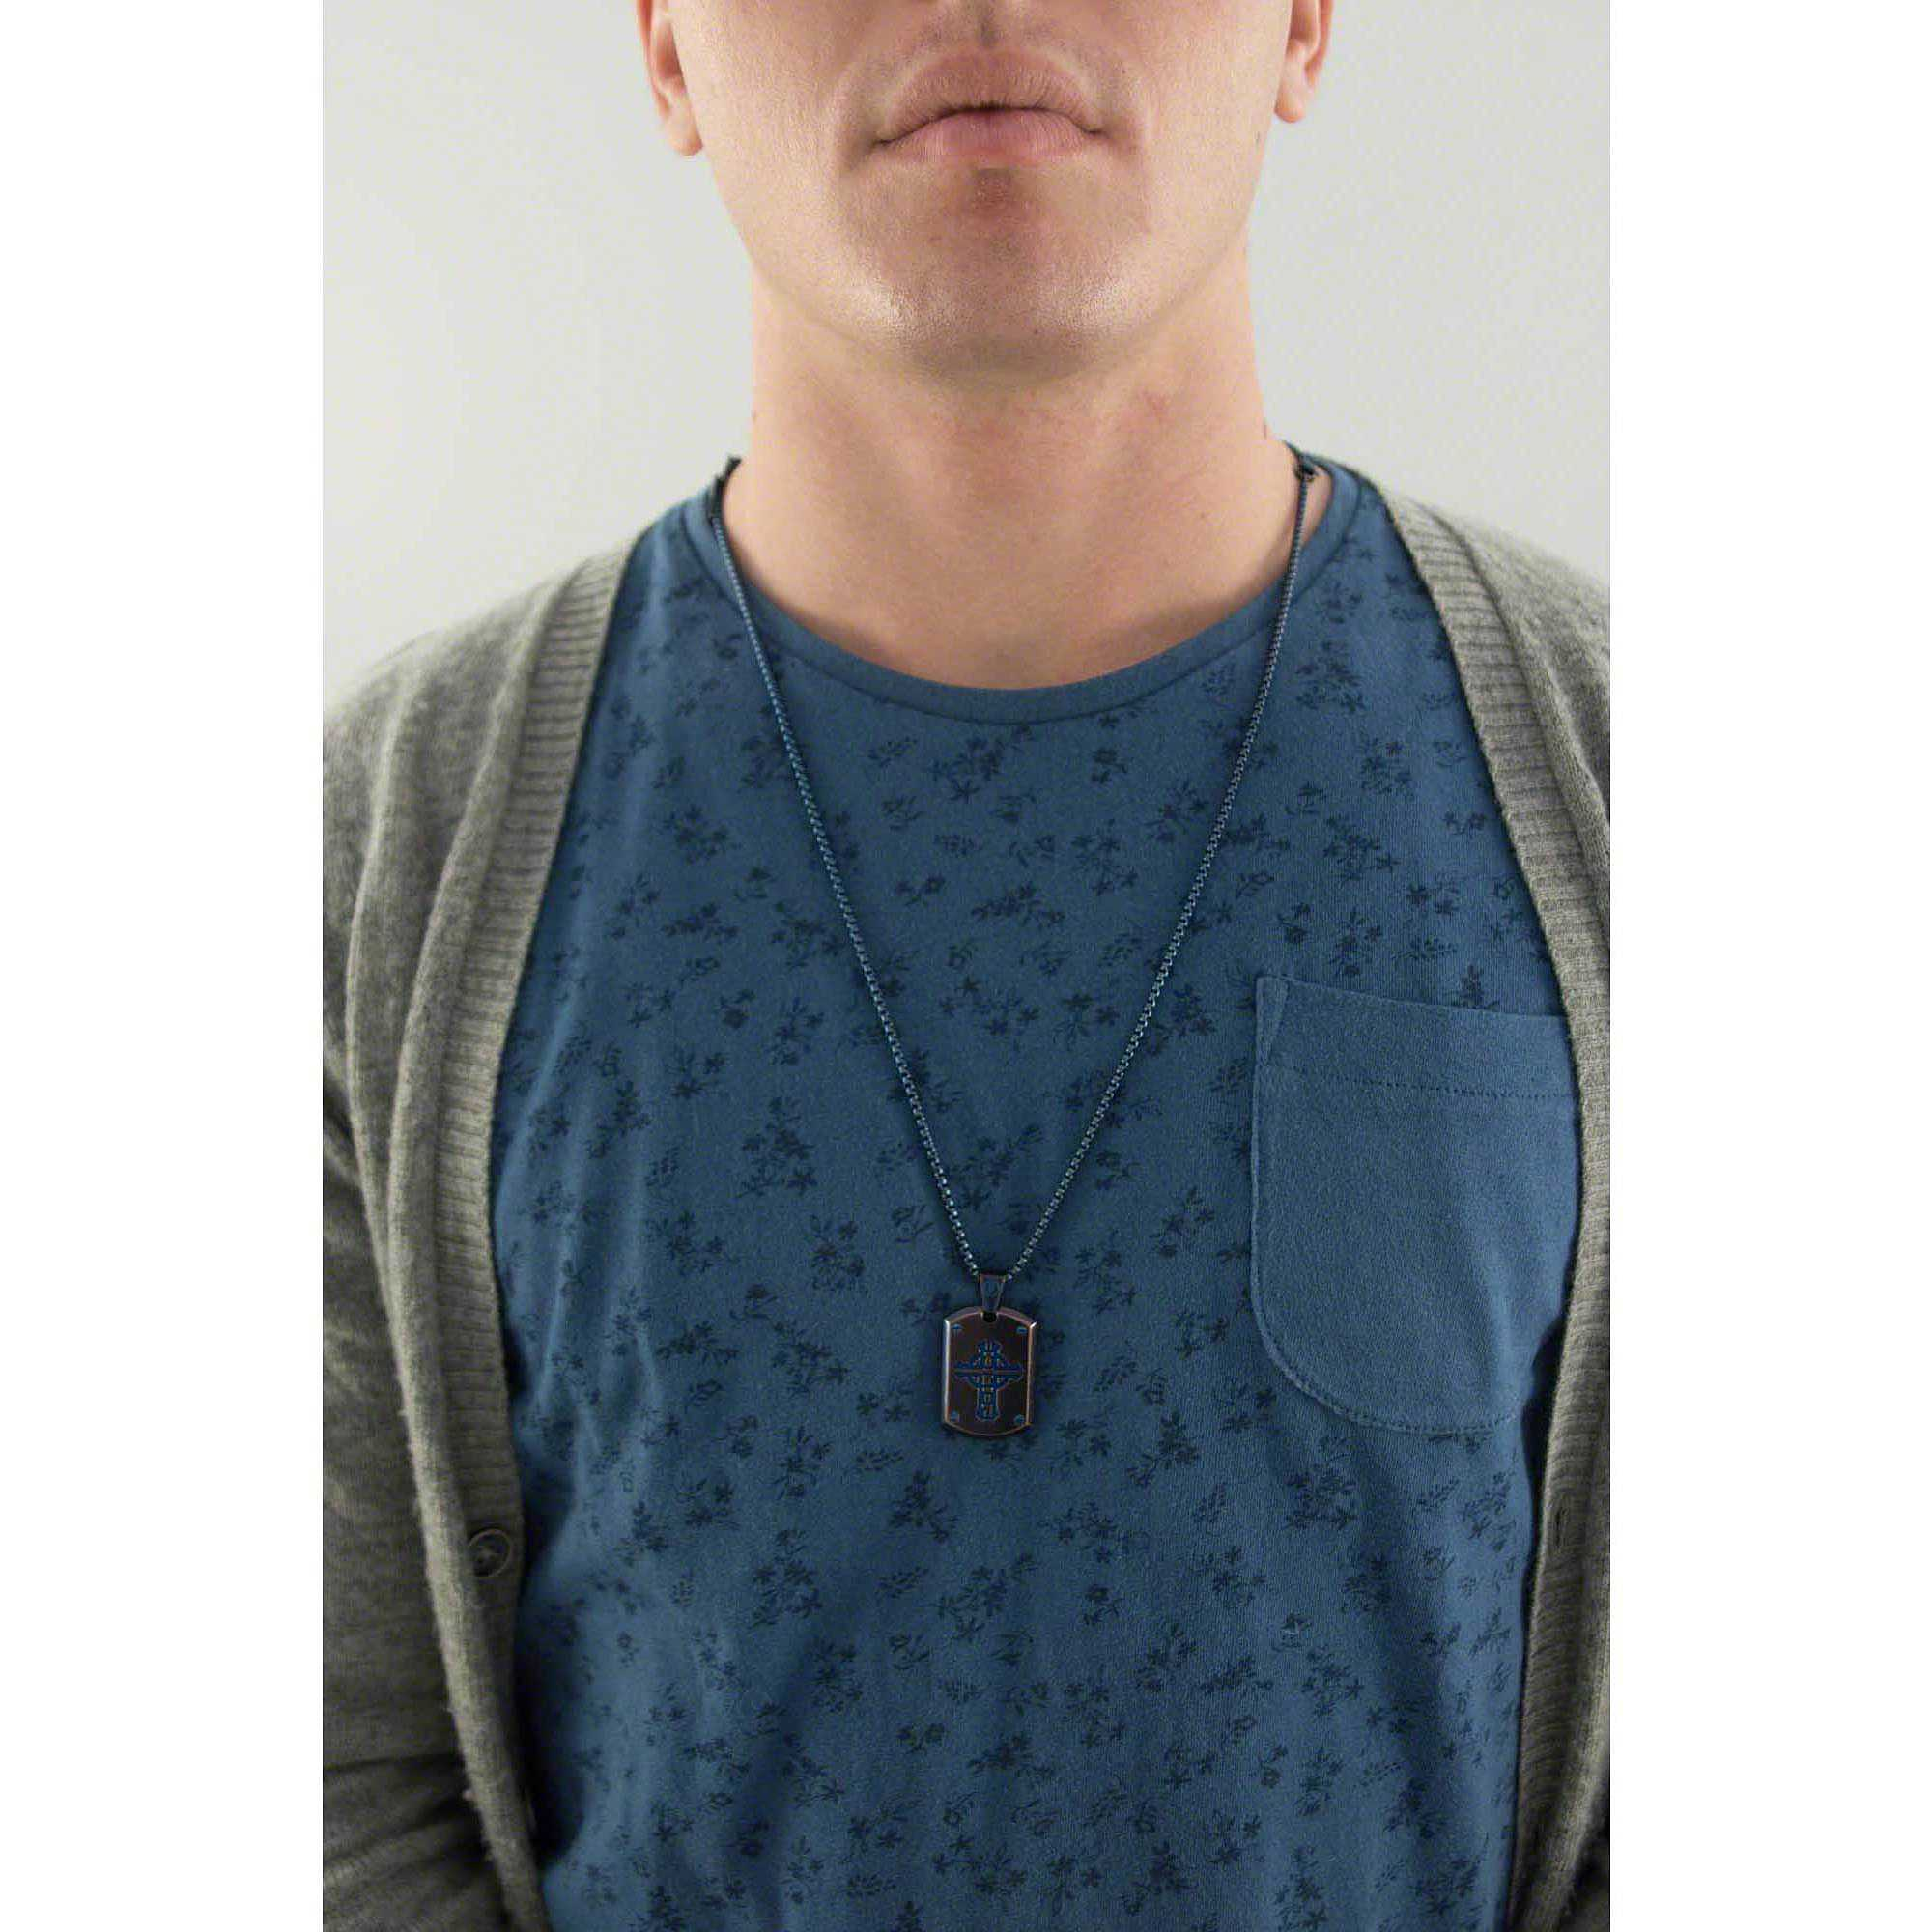 Necklace man jewellery police prowler s14afy01p necklaces police zoom aloadofball Gallery